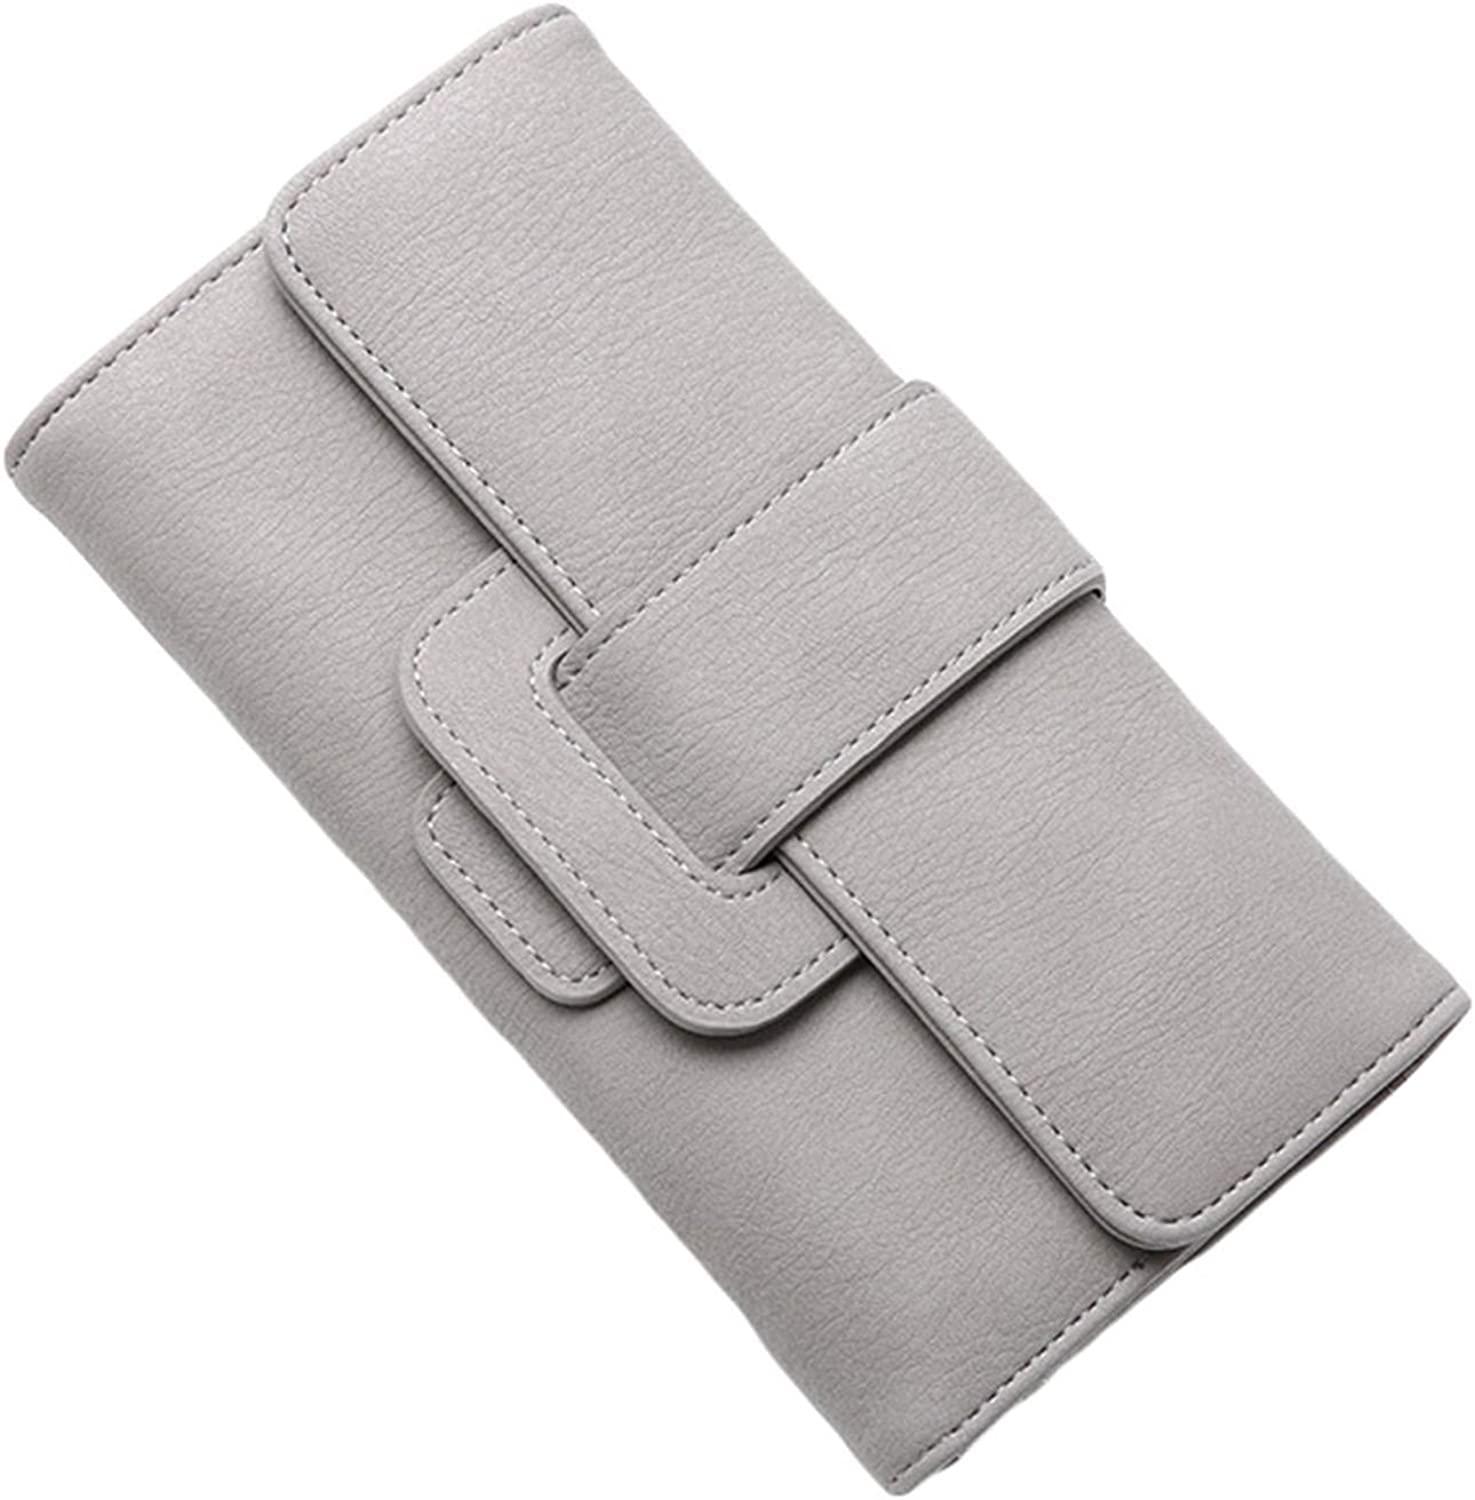 Andongnywell Wallet for Women Leather Bifold Long Ladies Credit Card Holder Organizer Ladies Clutch Purses